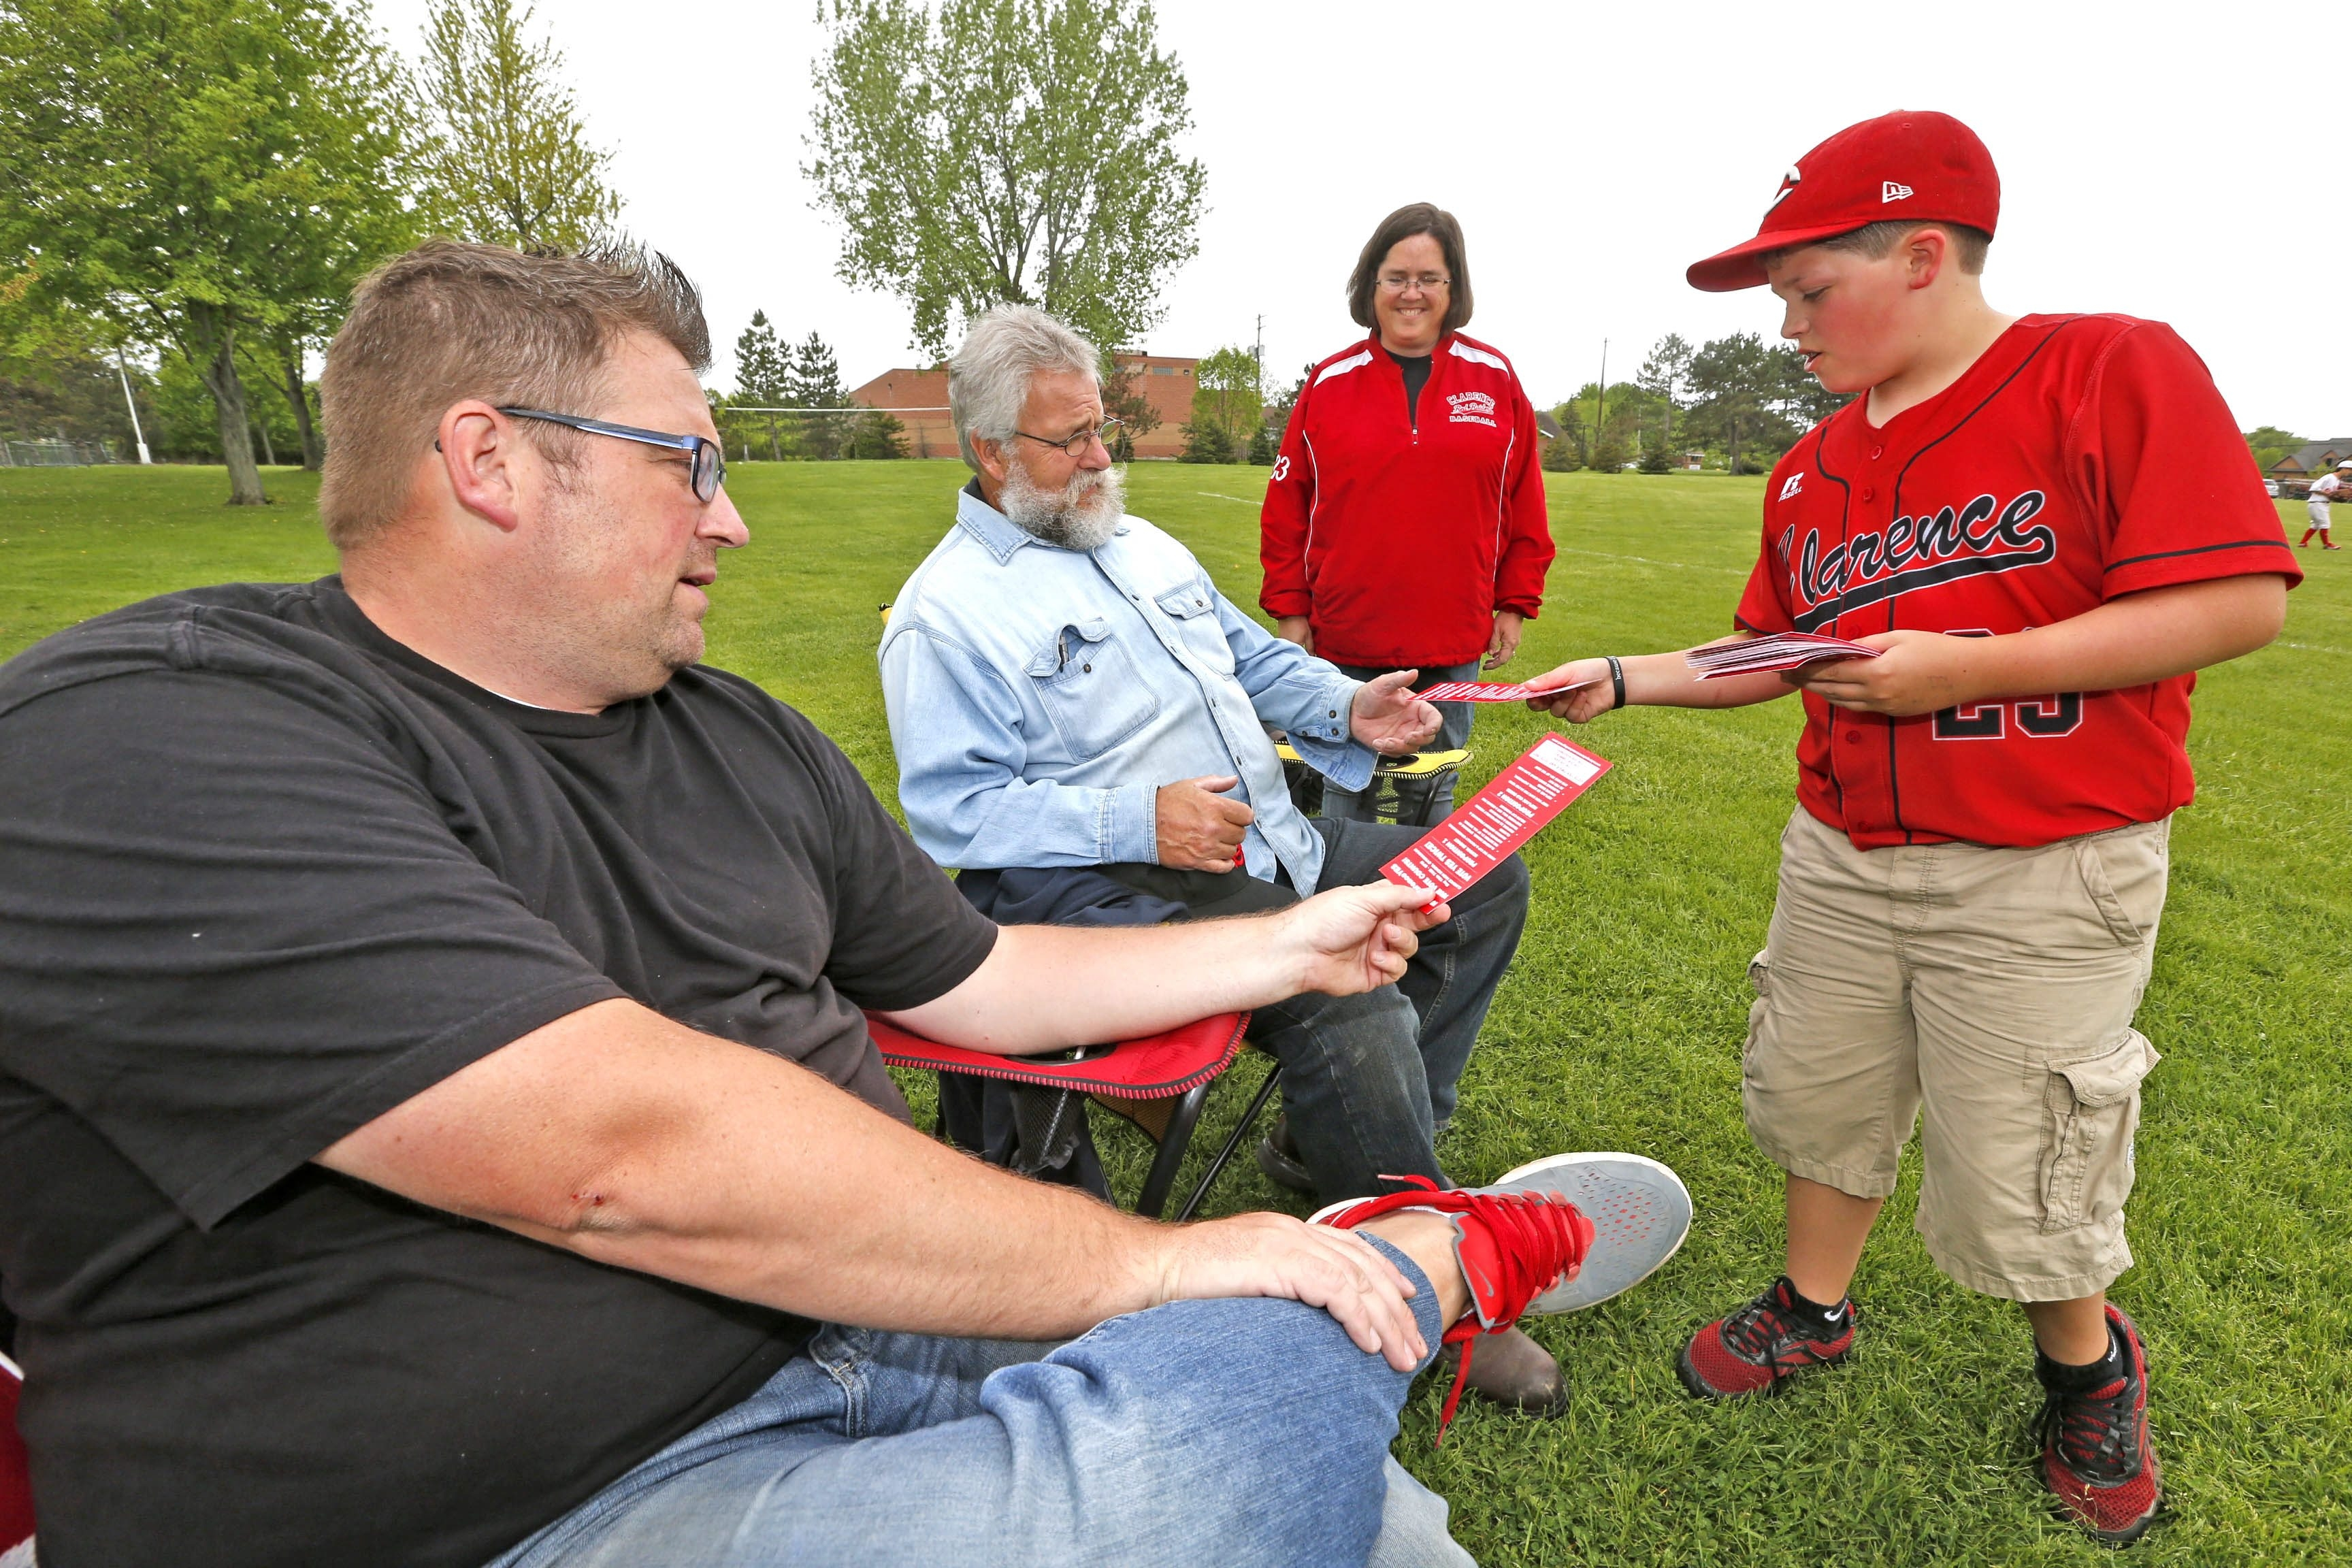 Sean Andrews, 12, with his mom, Tricia, observing in back, passes a pamphlet about Tuesday's school vote to Clarence residents Adam Corry, left, and his dad, Dave Corry, who were watching a baseball game at Town Place Park in the town on Friday.